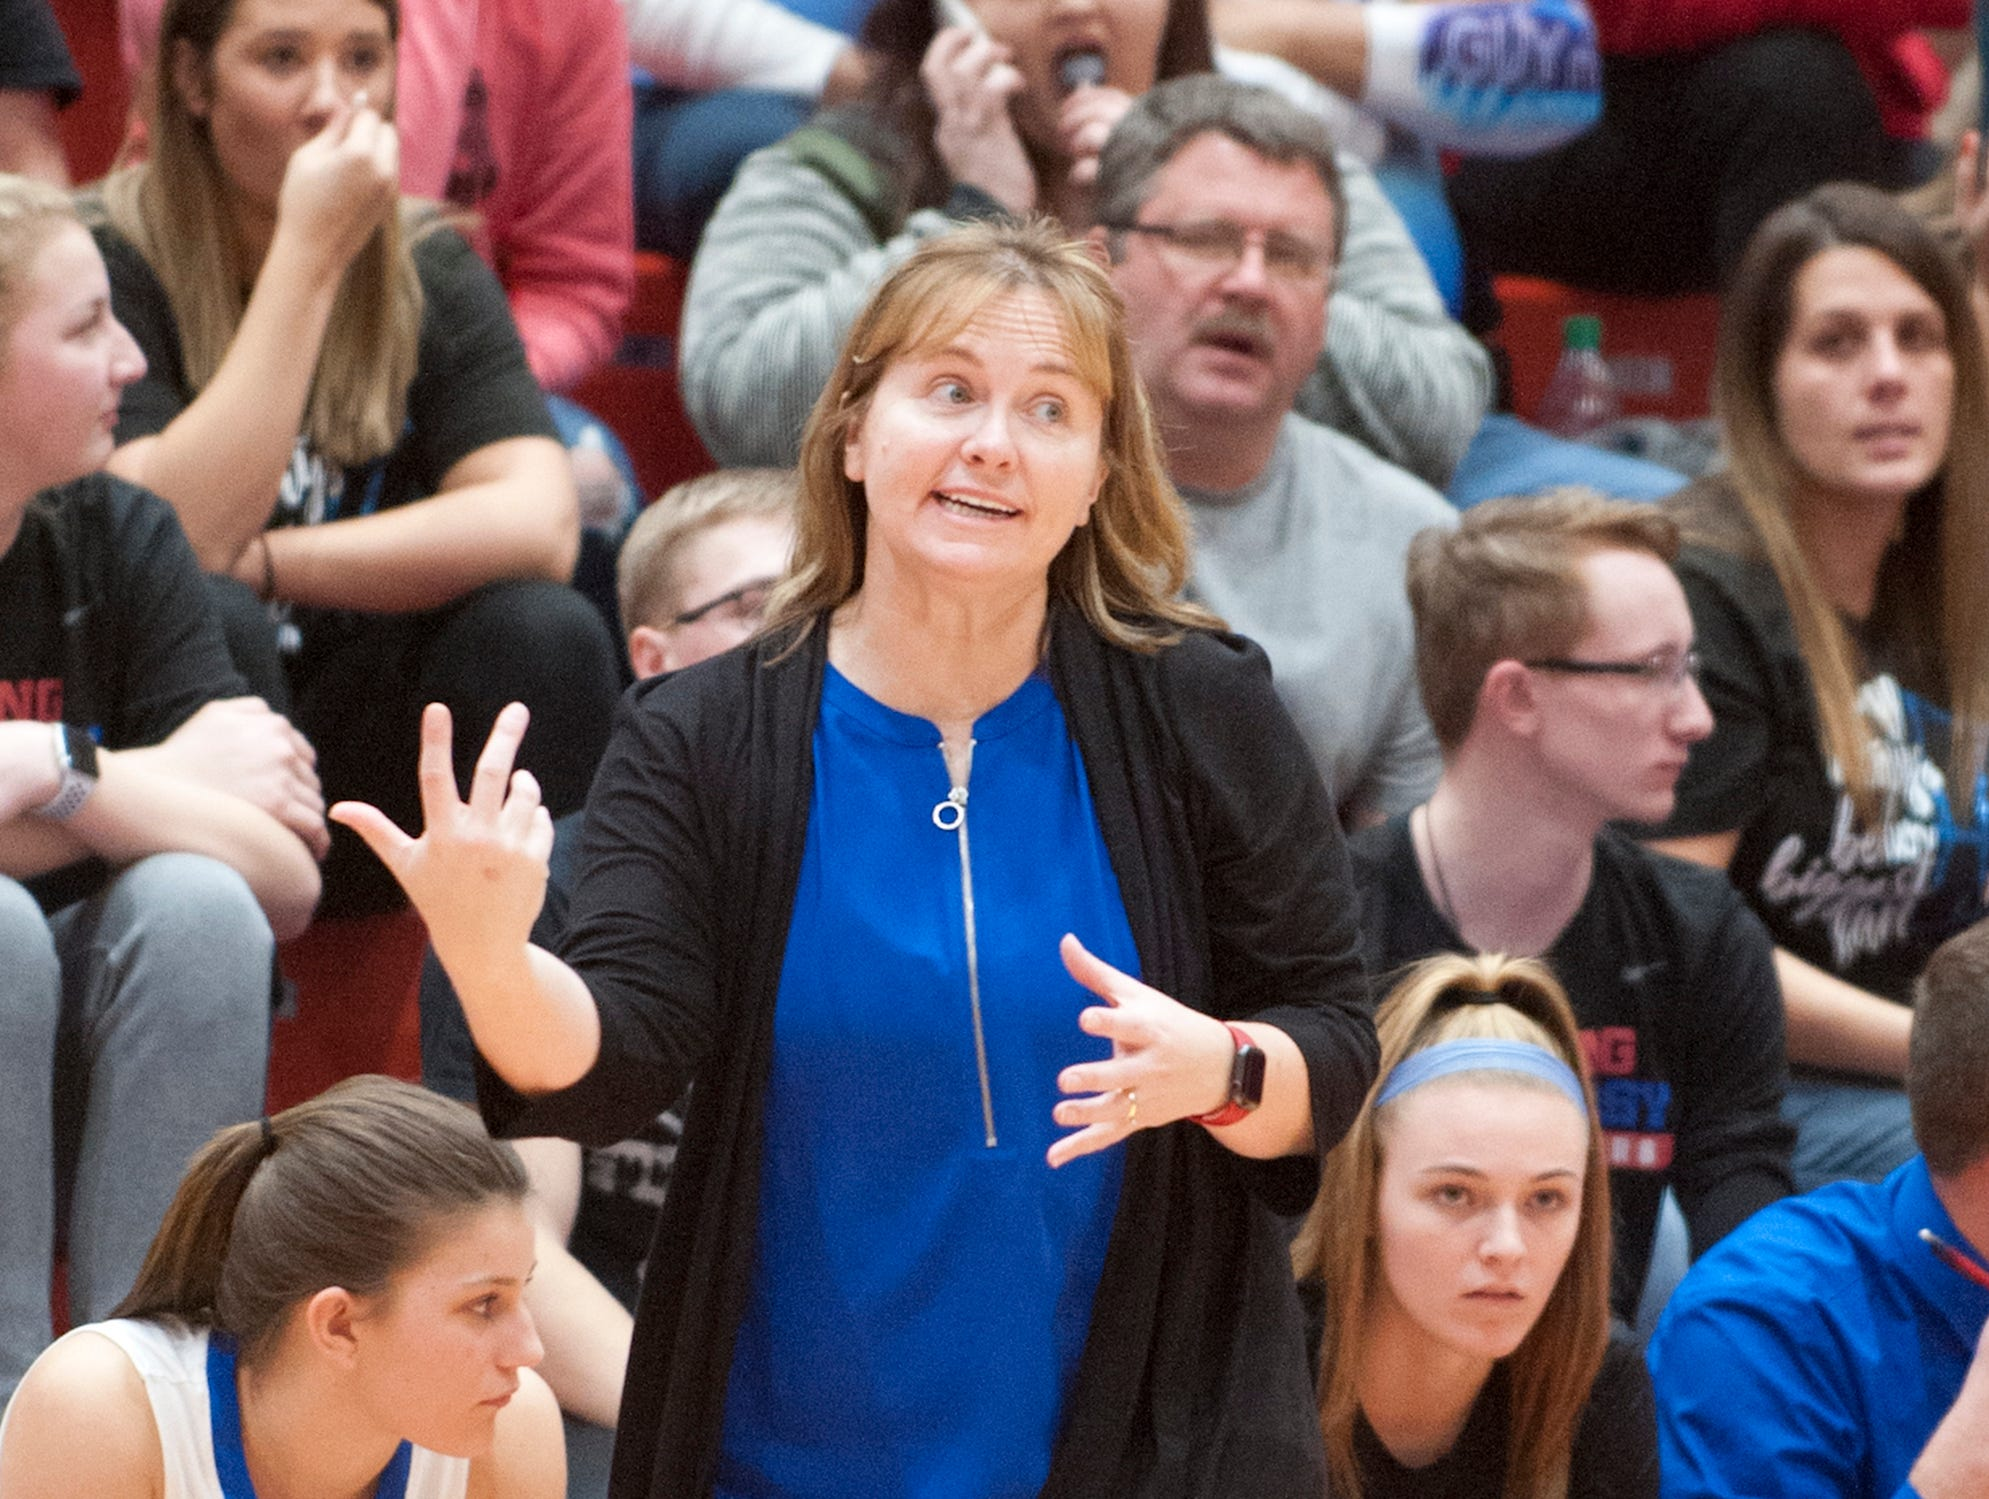 Jennings County head basketball coach Kristi Sigler signals her players on the court.04 February 2019